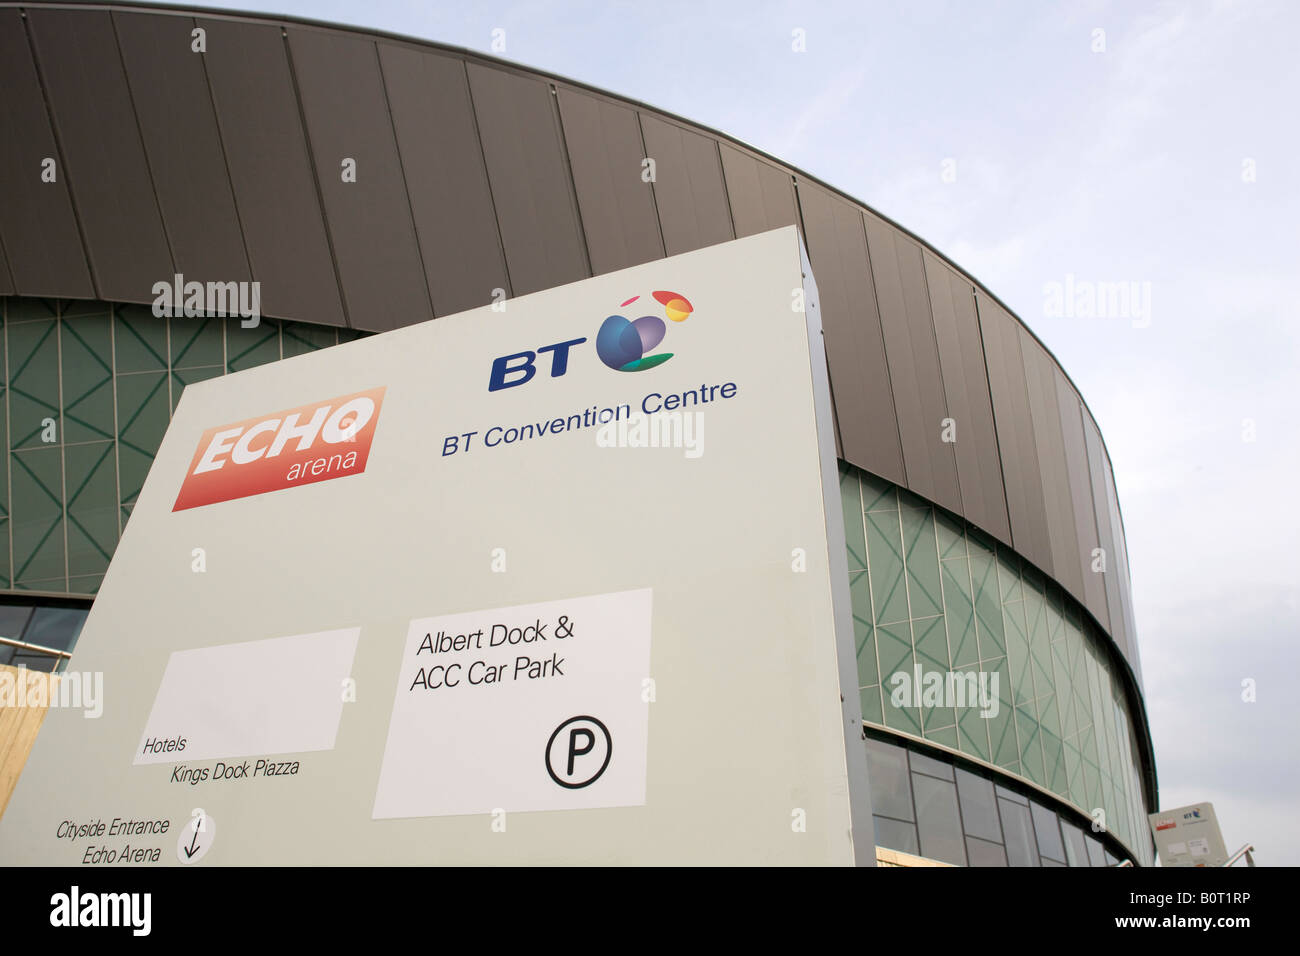 The Liverpool Echo Arena and BT conference centre in the Albert Dock area of Liverpool alongside the River Mersey - Stock Image